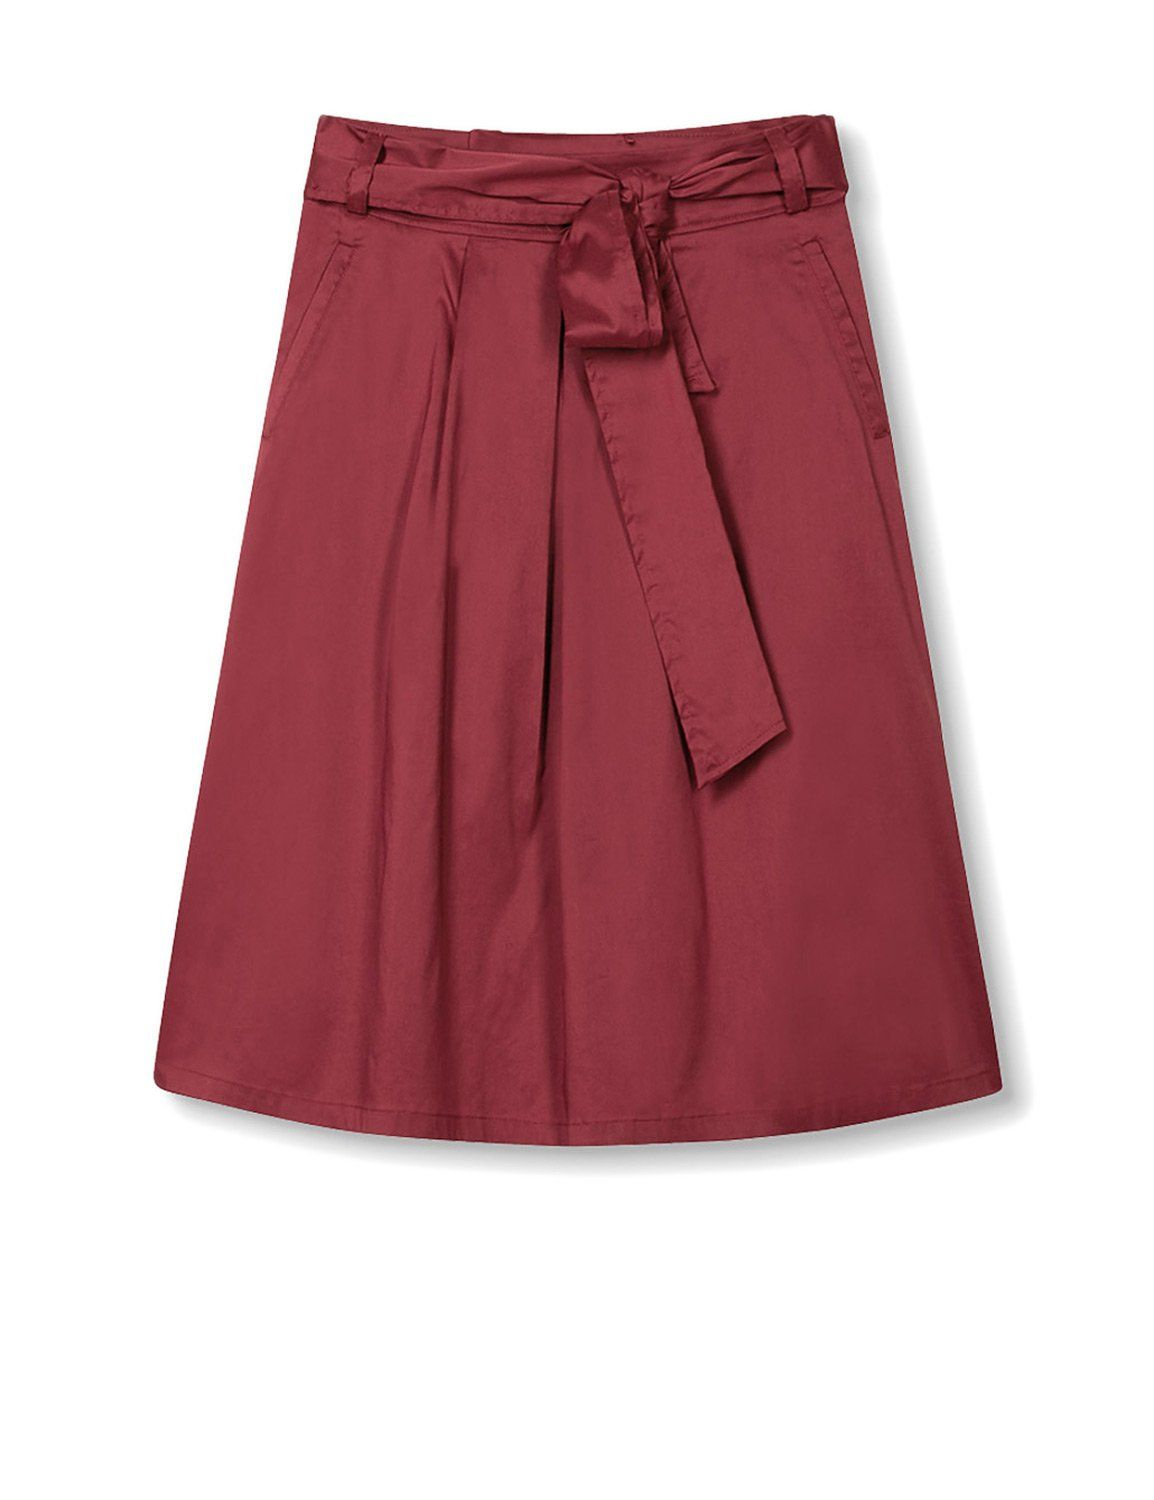 Esprit Women's Women's Red Midi Skirt in Size 42 Red